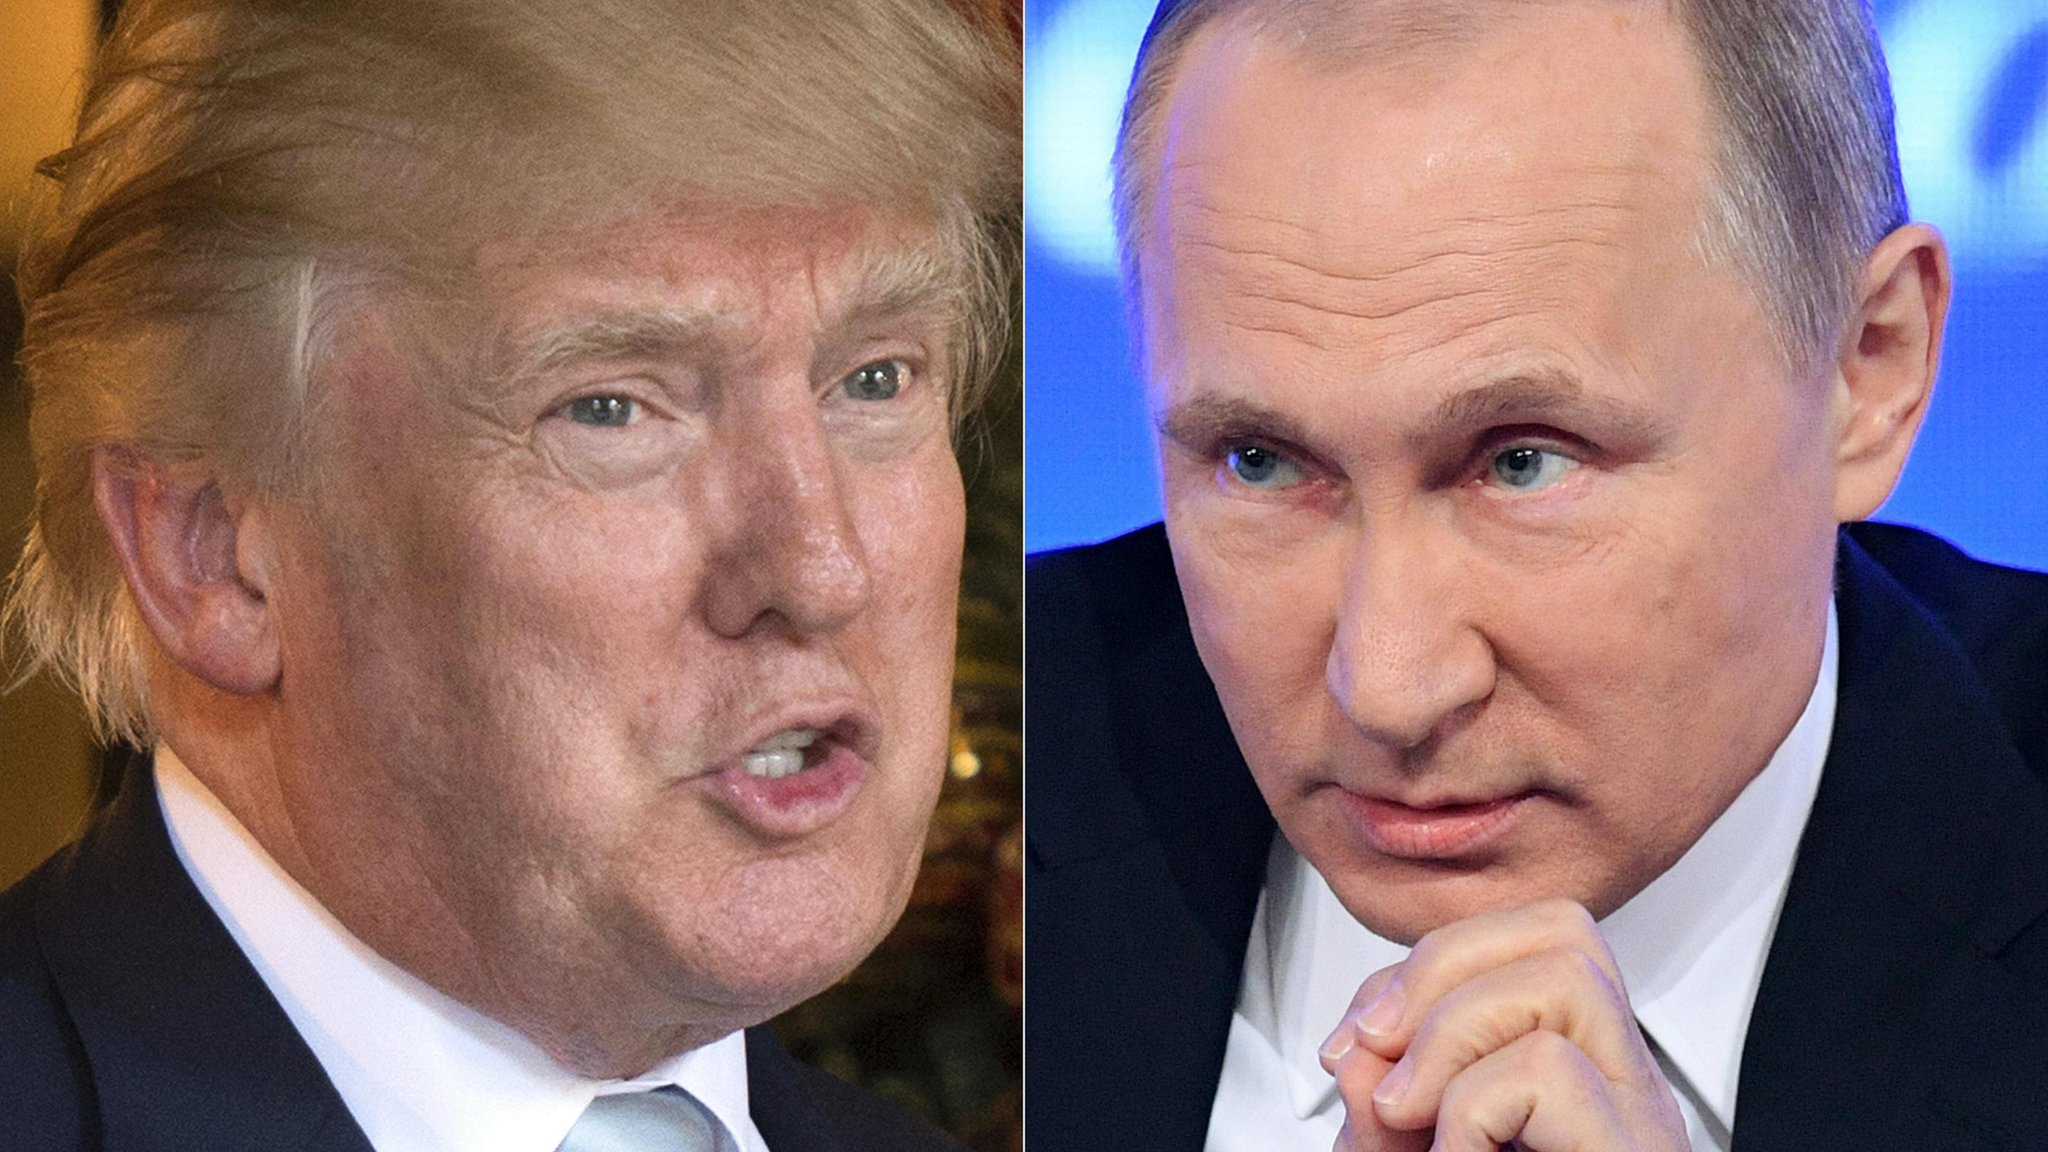 Trump-Putin summit: US leader cautious ahead of Helsinki talks